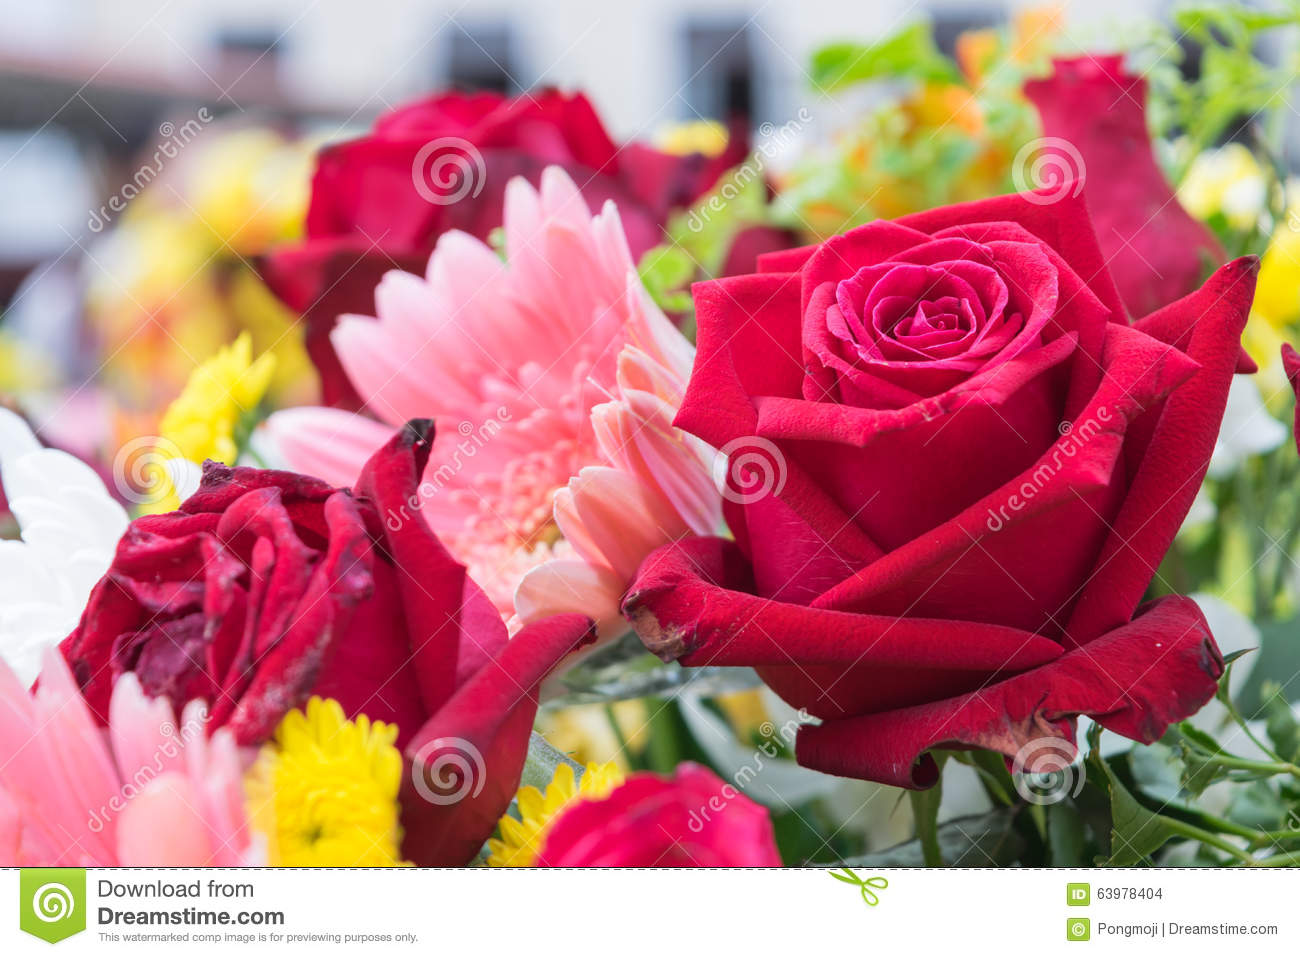 Beautiful red rose flower in a bouquet stock photo image of petal download beautiful red rose flower in a bouquet stock photo image of petal growth izmirmasajfo